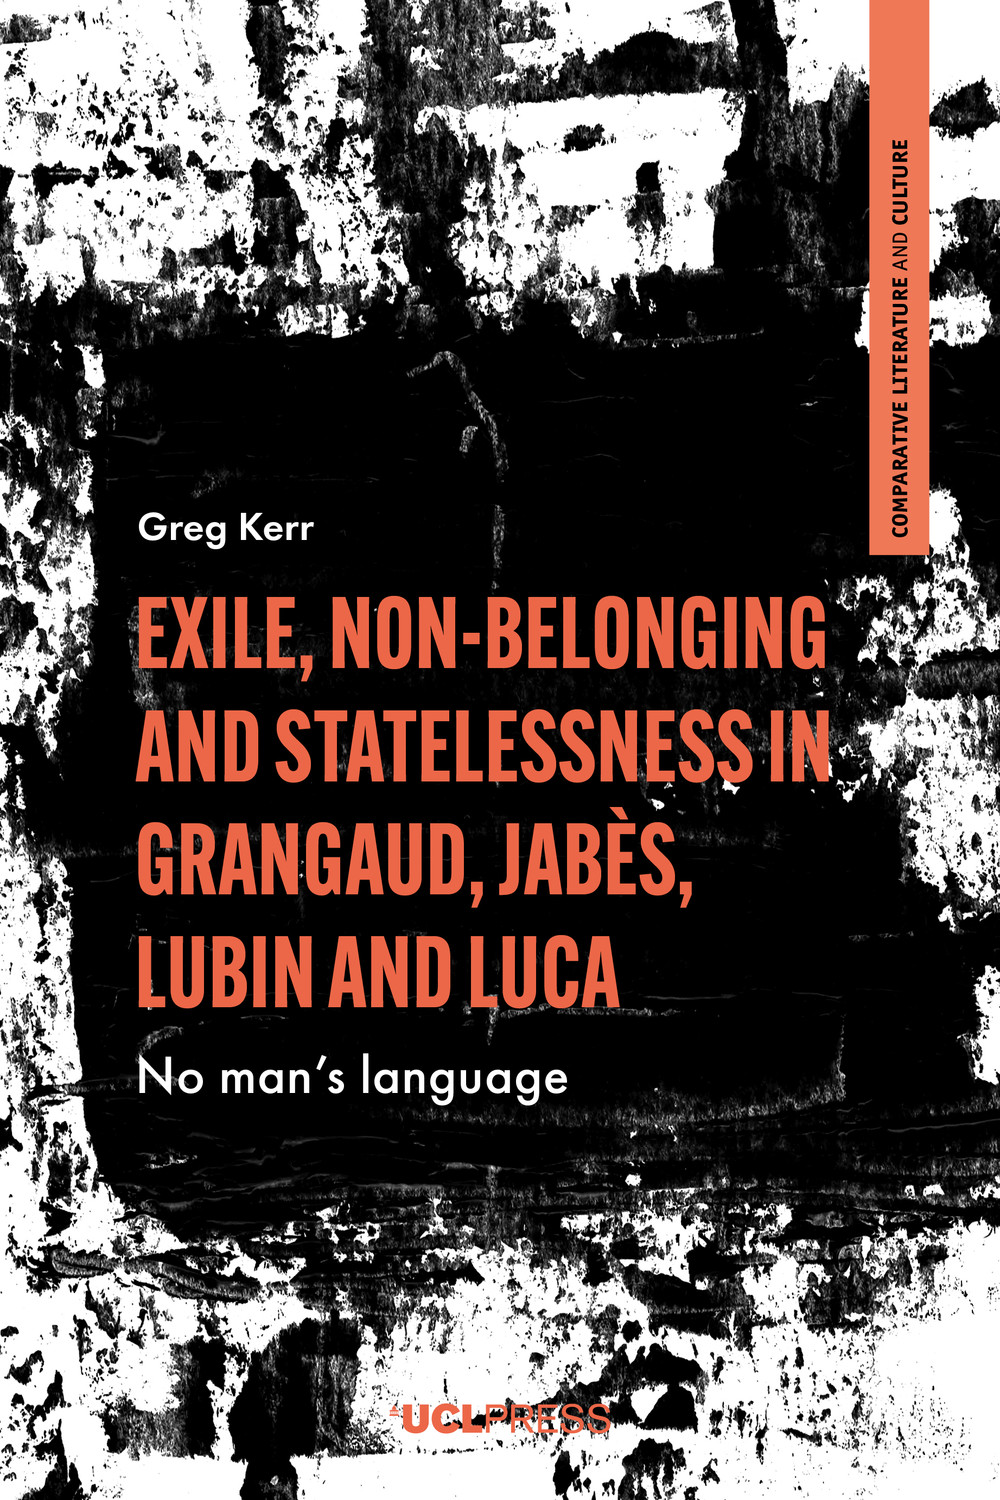 Exile, Non-Belonging and Statelessness in Grangaud, Jabès, Lubin and Luca